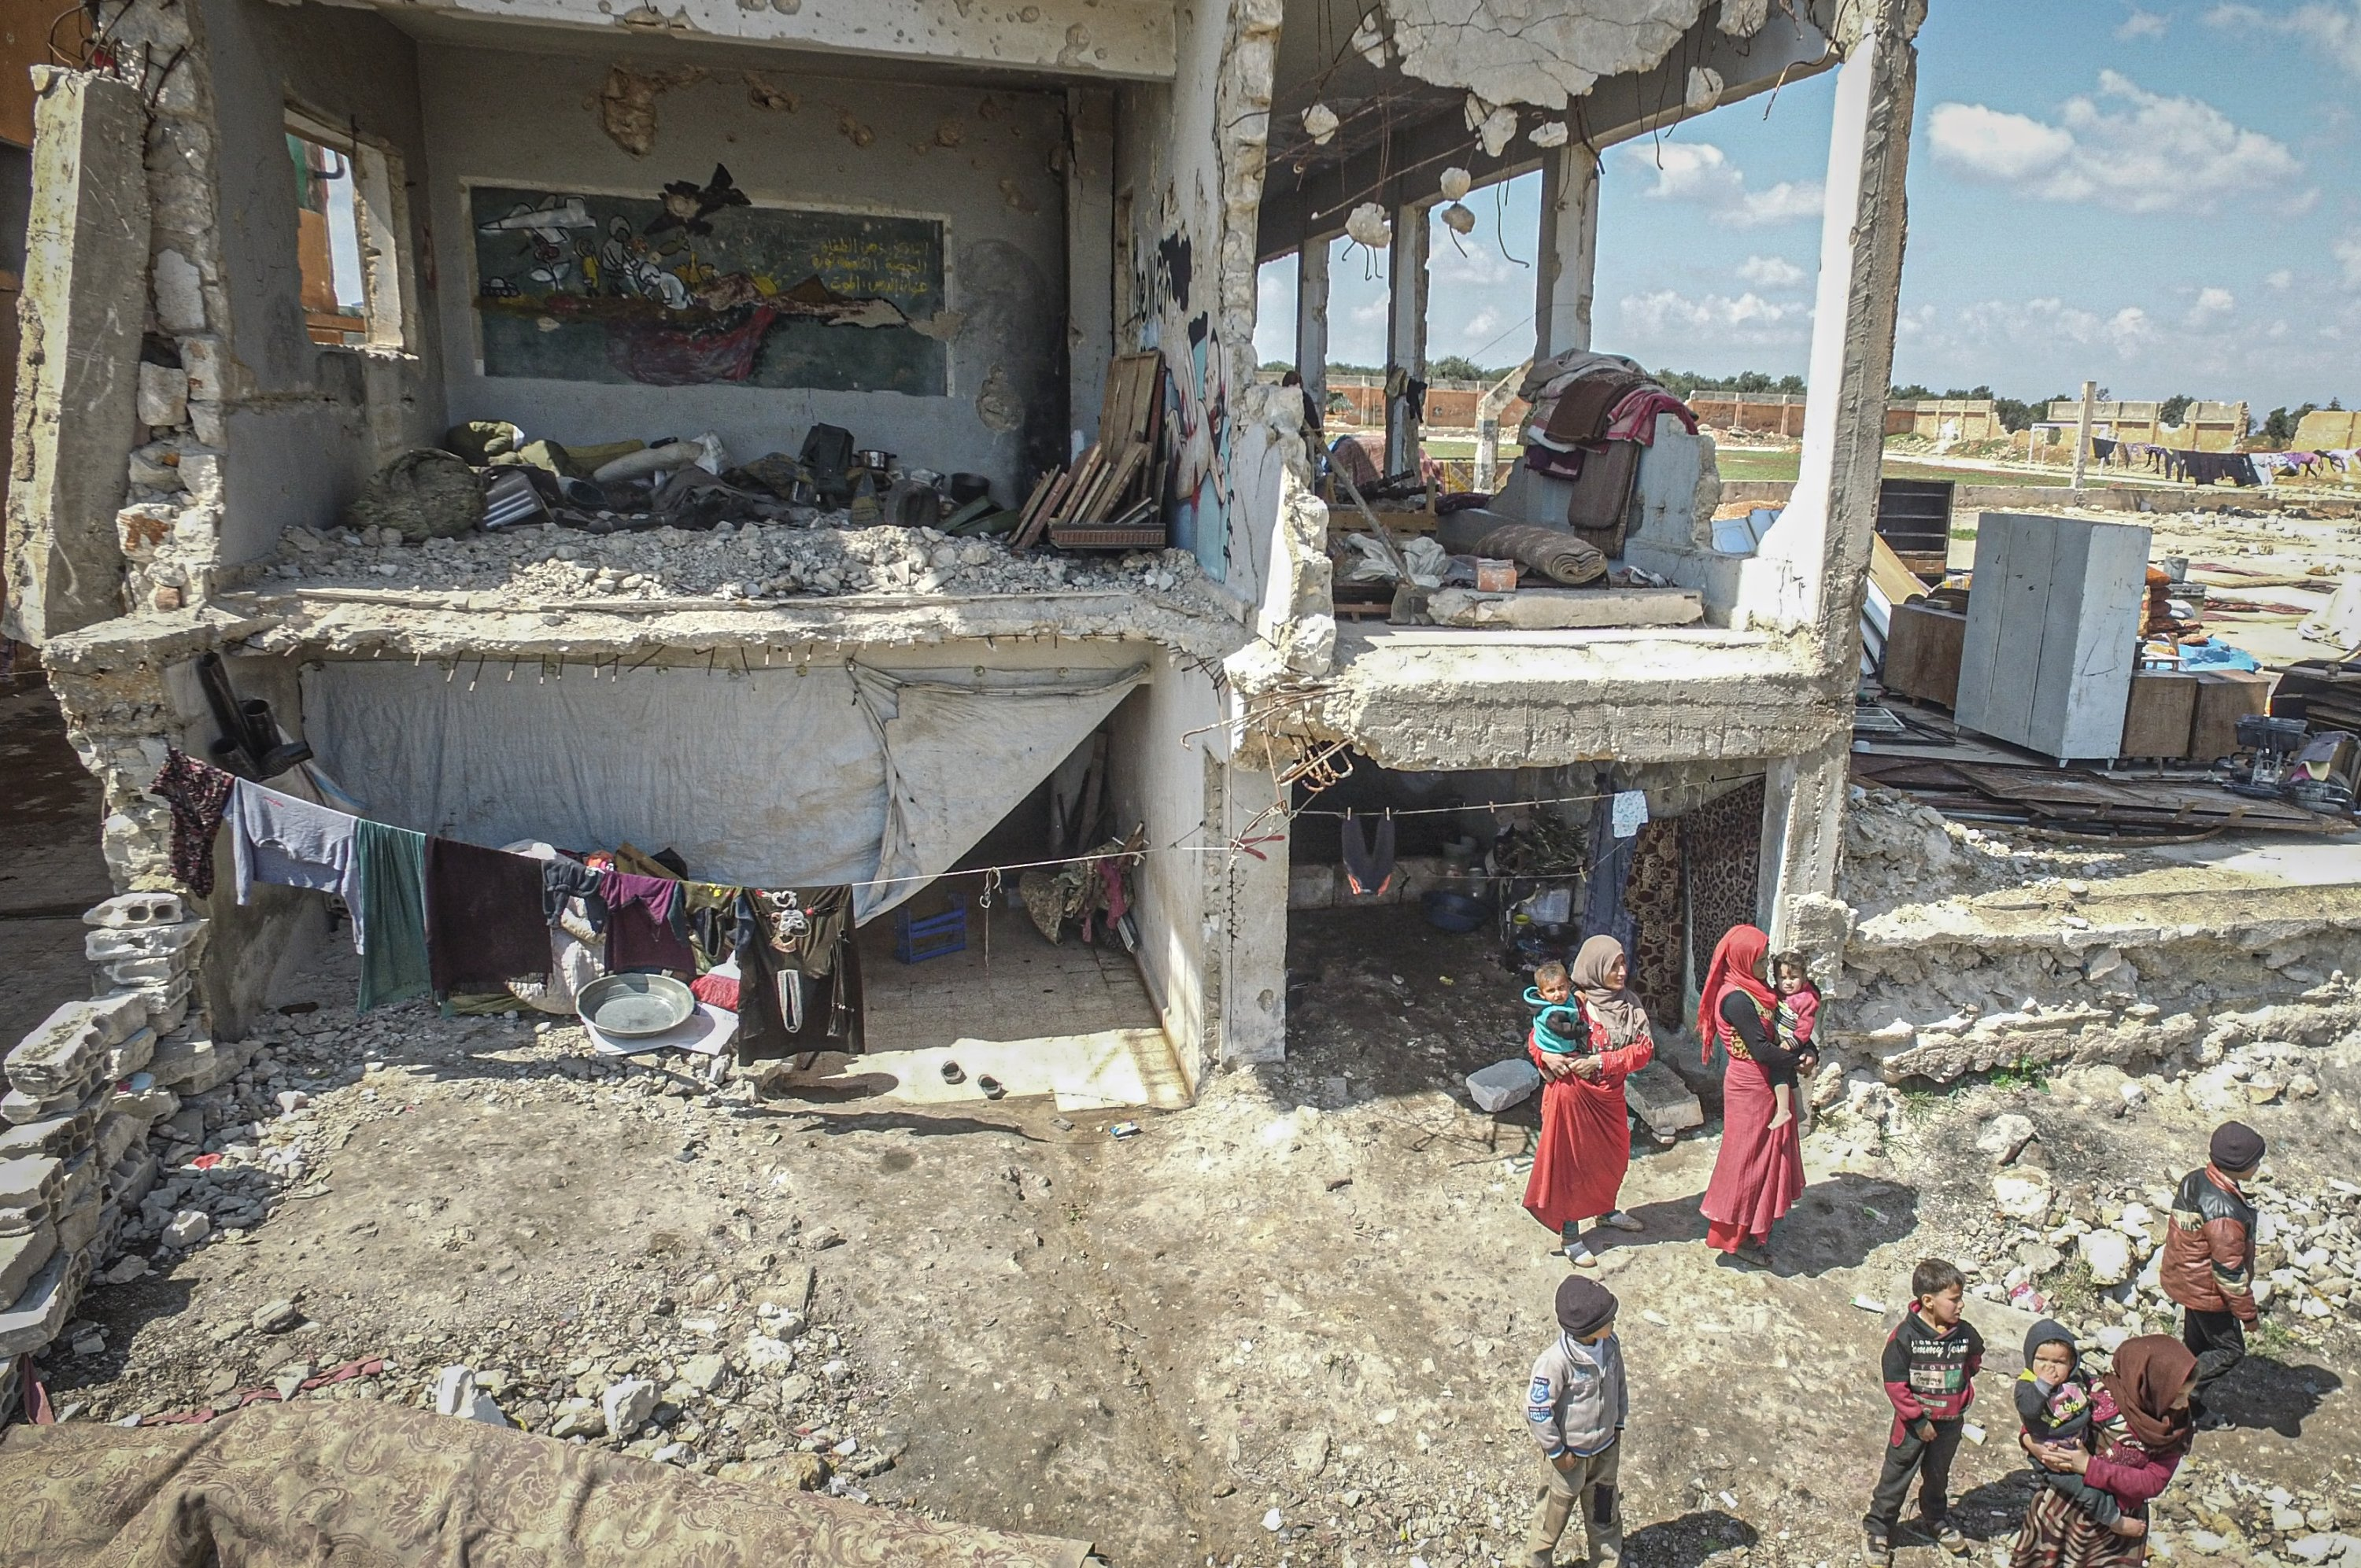 16 displaced Syrian families are living in two heavily damaged schools, located side by side, Idlib, Friday, April 17, 2020. (AA)